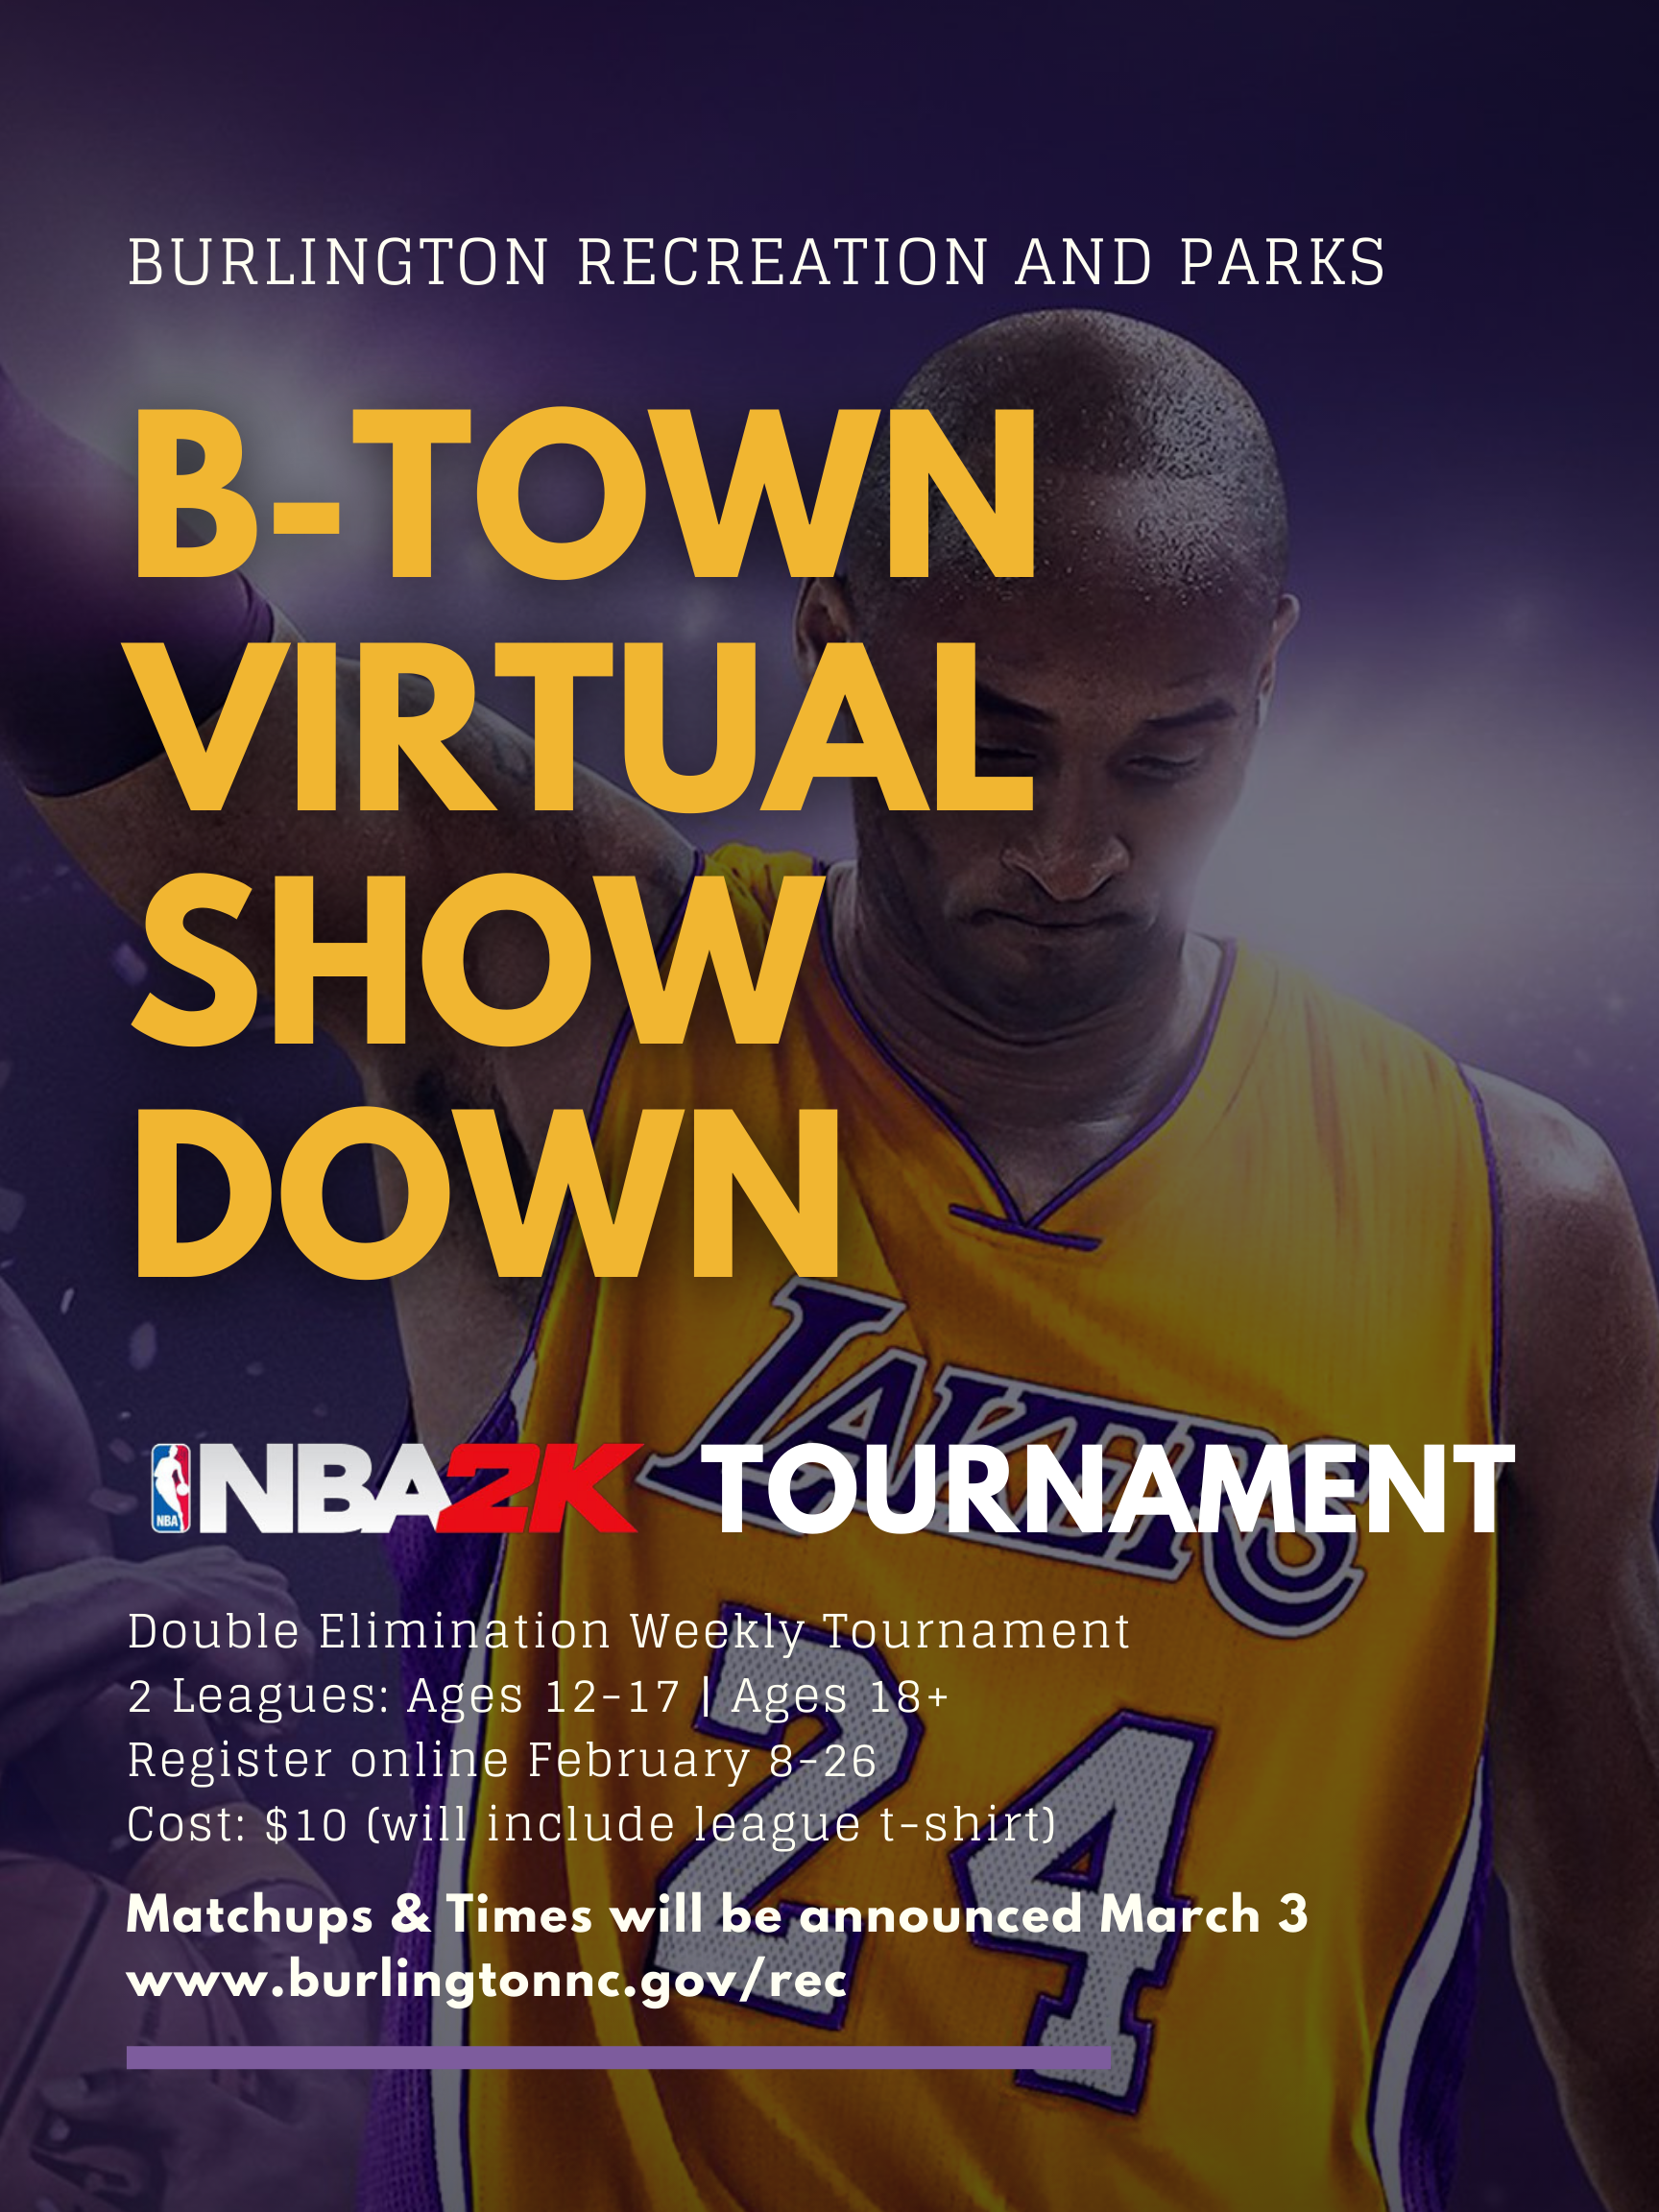 BTown Virtual Showdown NBA2k21 Tournament Flyer